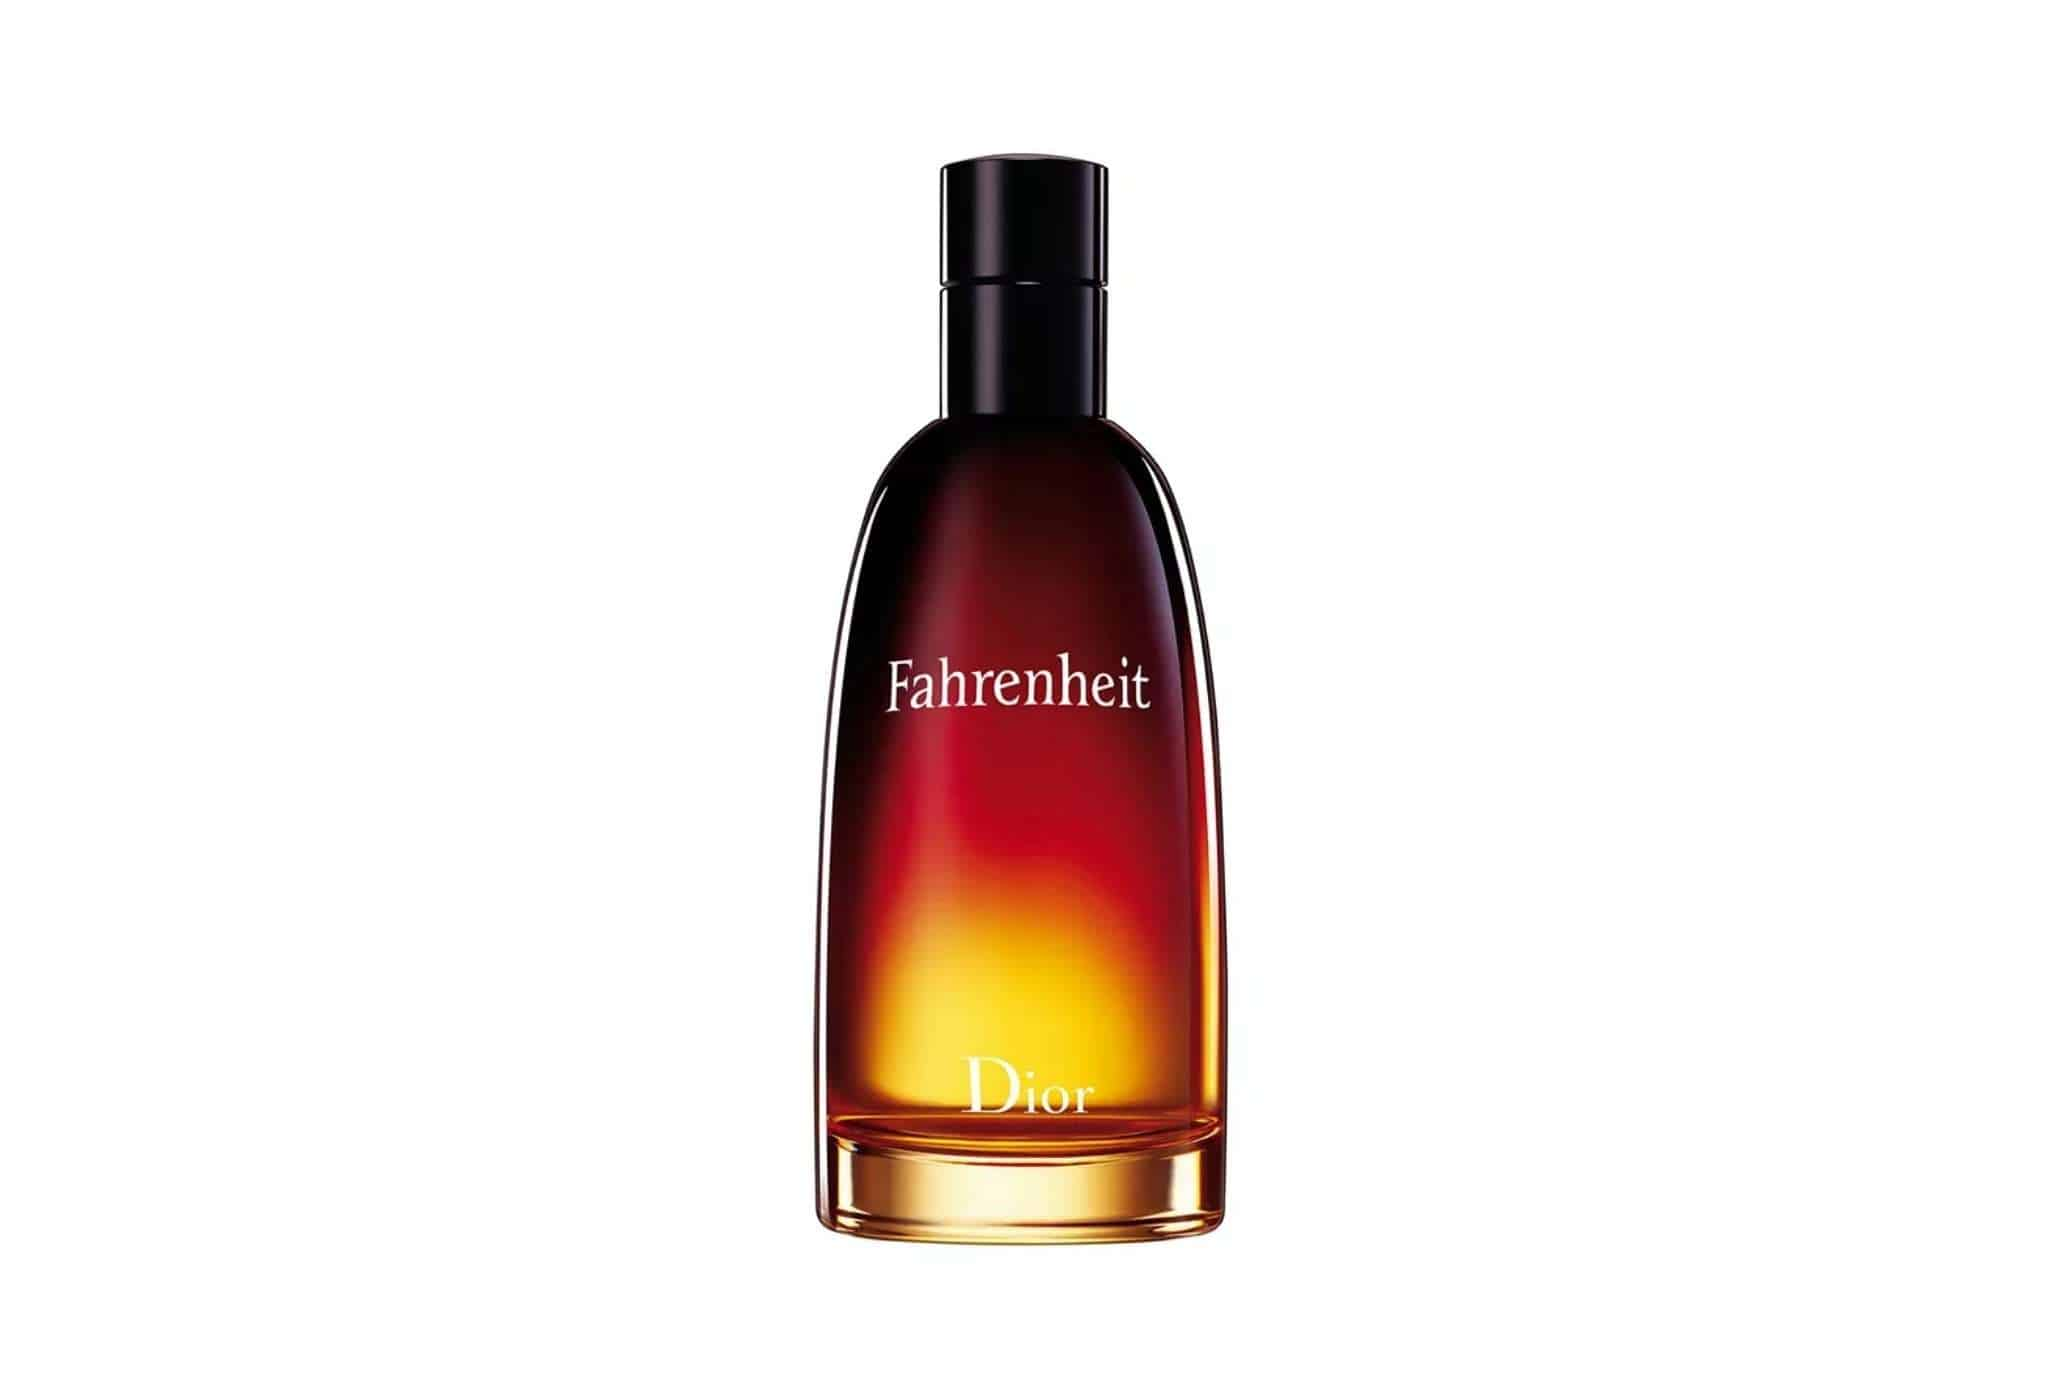 Dior Fahrenheit guarantees compliments from women